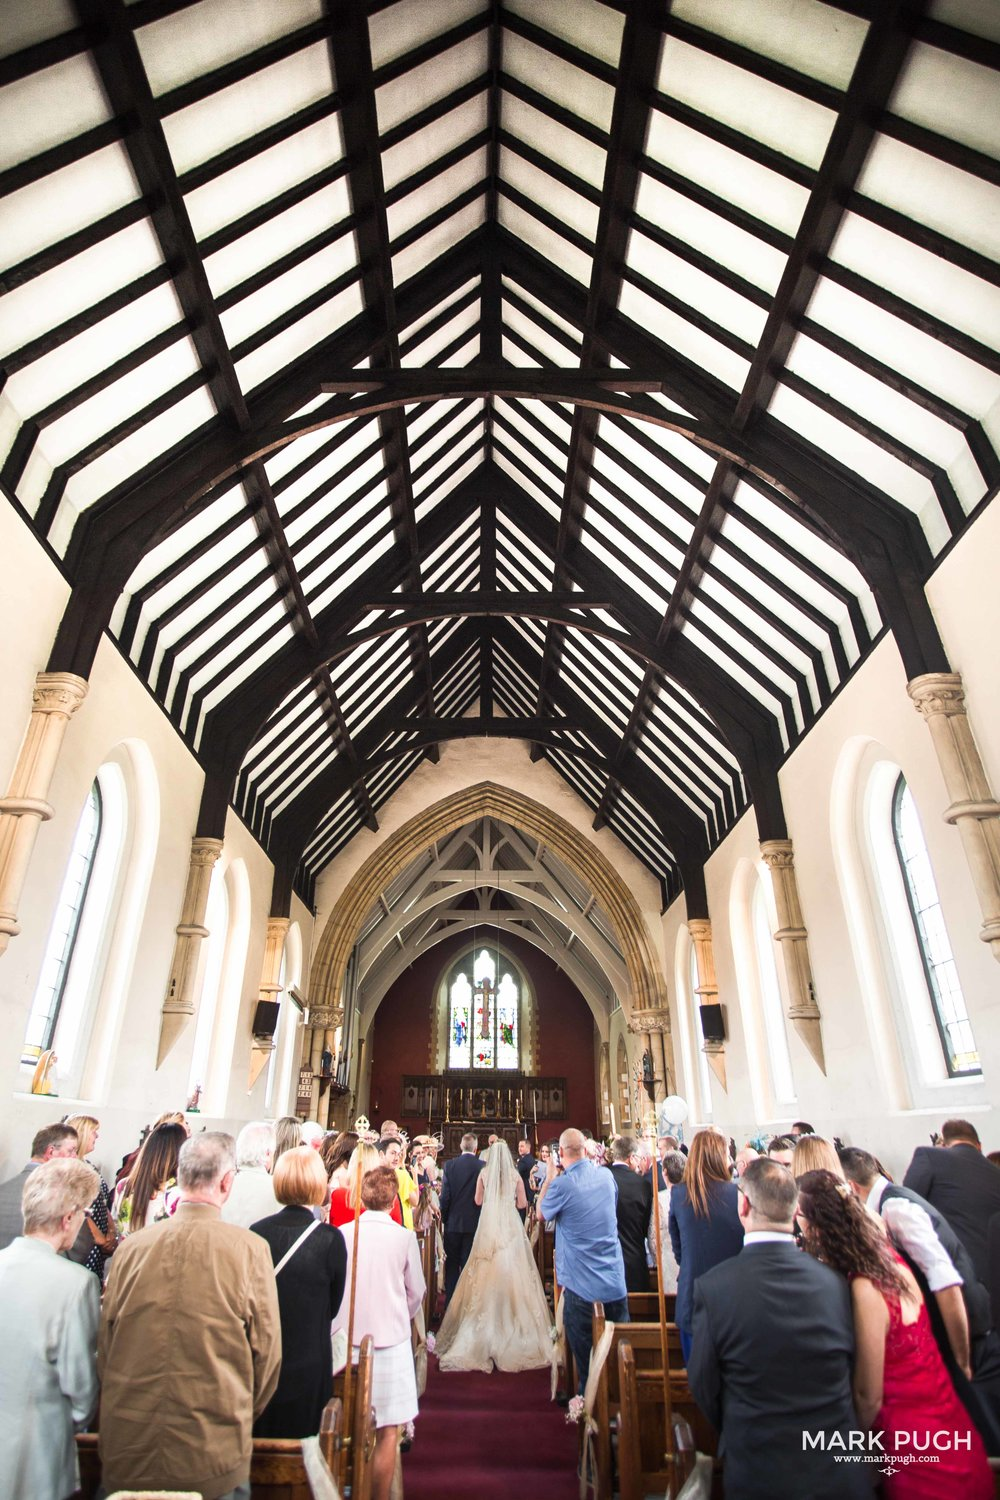 045 - Lucy and Tim - fineART wedding photography featuring the Goosedale Conference and Banqueting venue NG6 8UJ by www.markpugh.com Mark Pugh of www.mpmedia.co.uk_.JPG